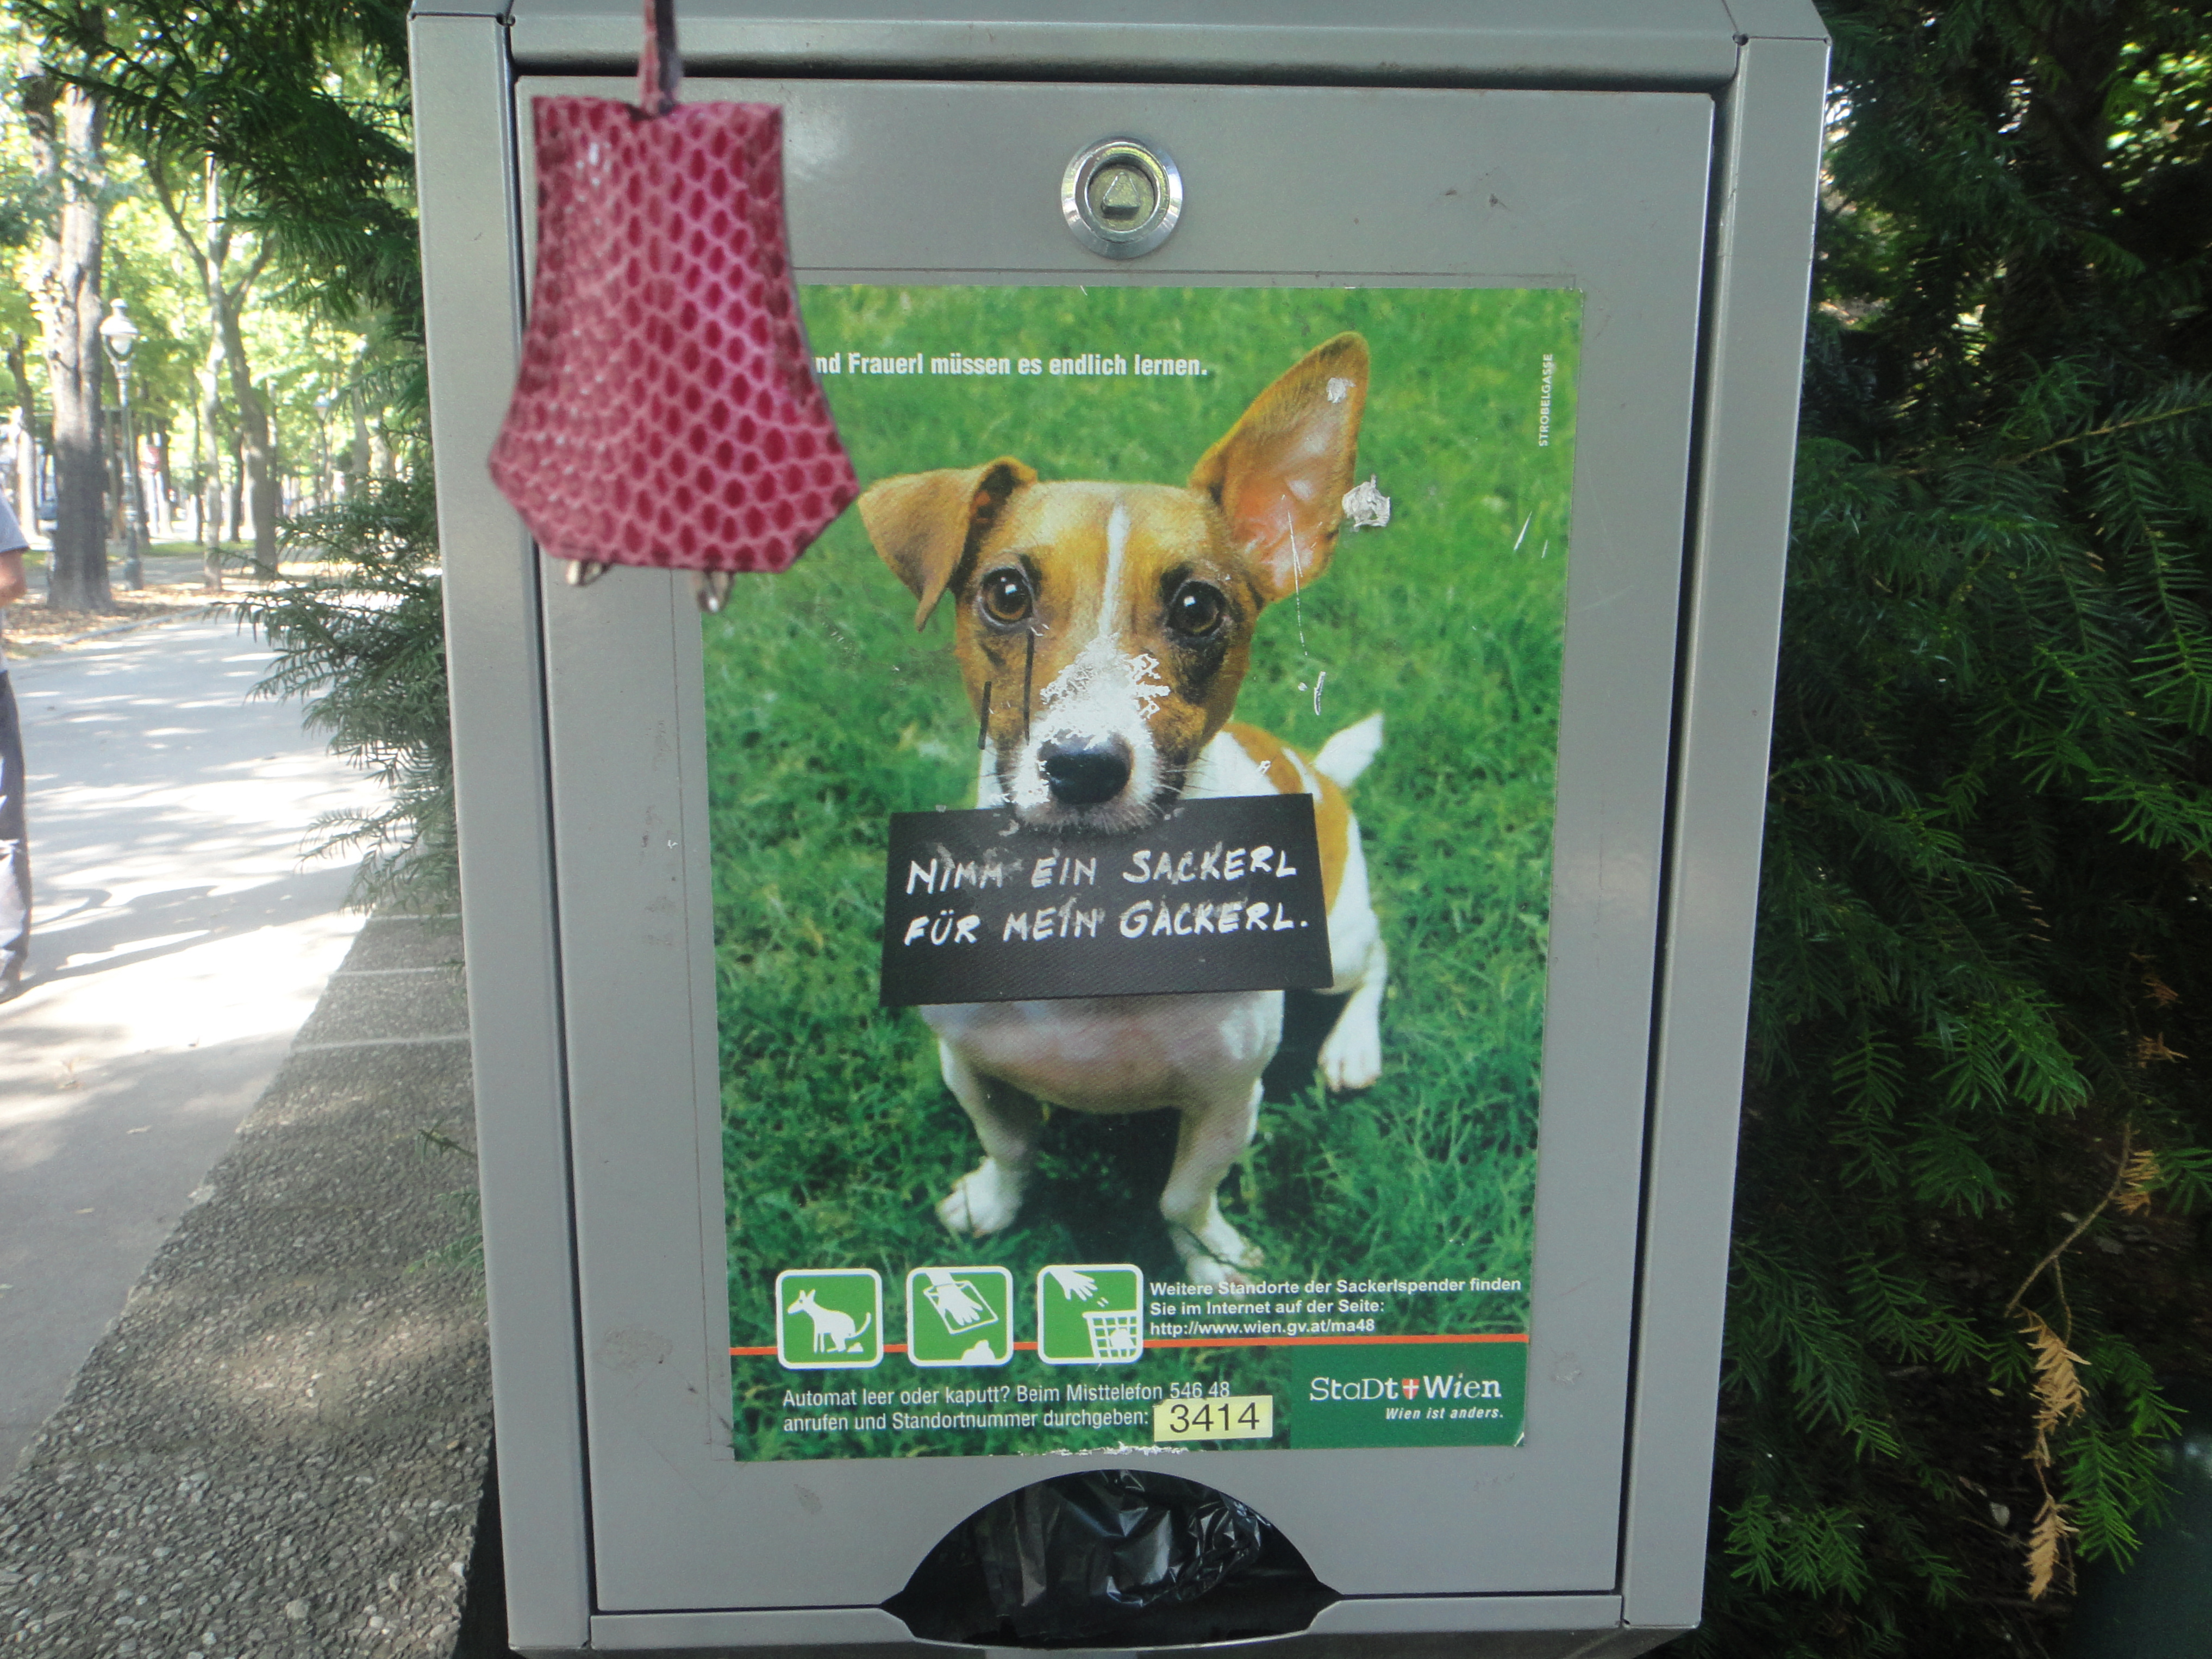 get your bags for dog poo here